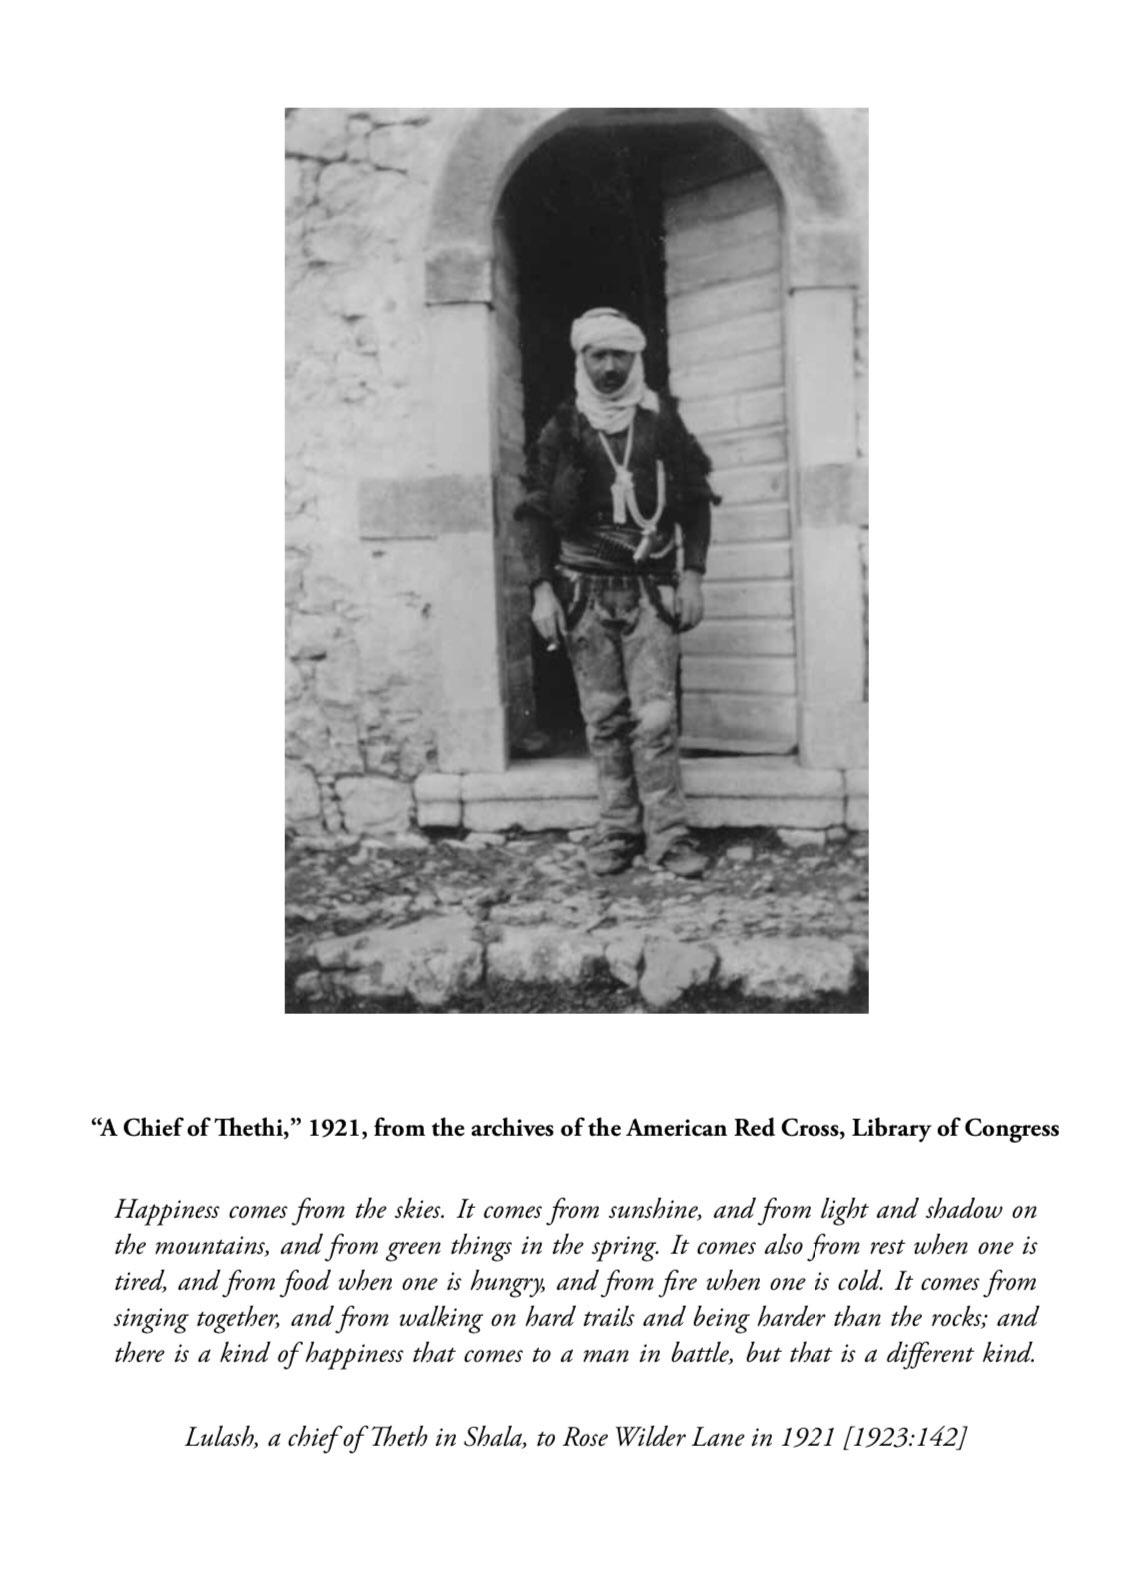 """""""…and there is a kind of happiness that comes to a man in battle, but that is a different kind."""", A Chief of Thethi [1921]"""